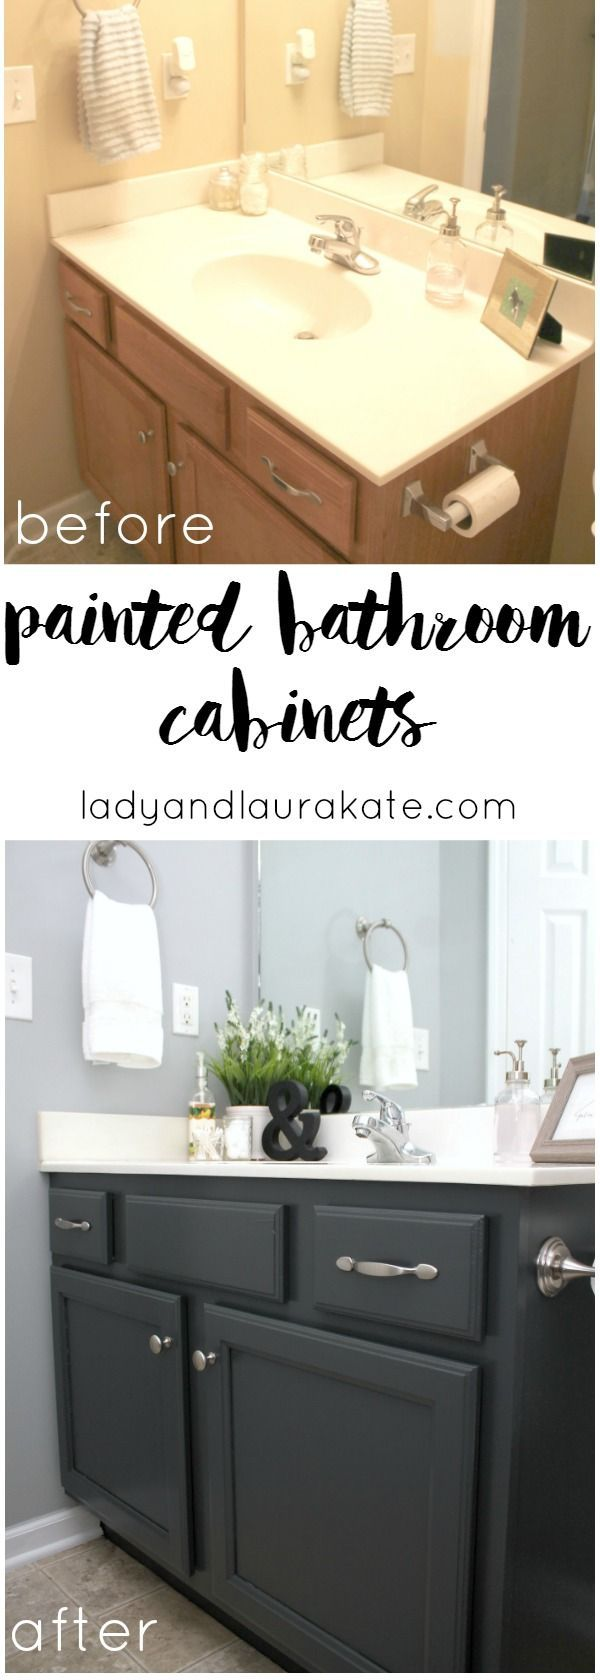 DIY painted bathroom cabinets! It's super simple to achieve in this how to with homemade chalk paint!